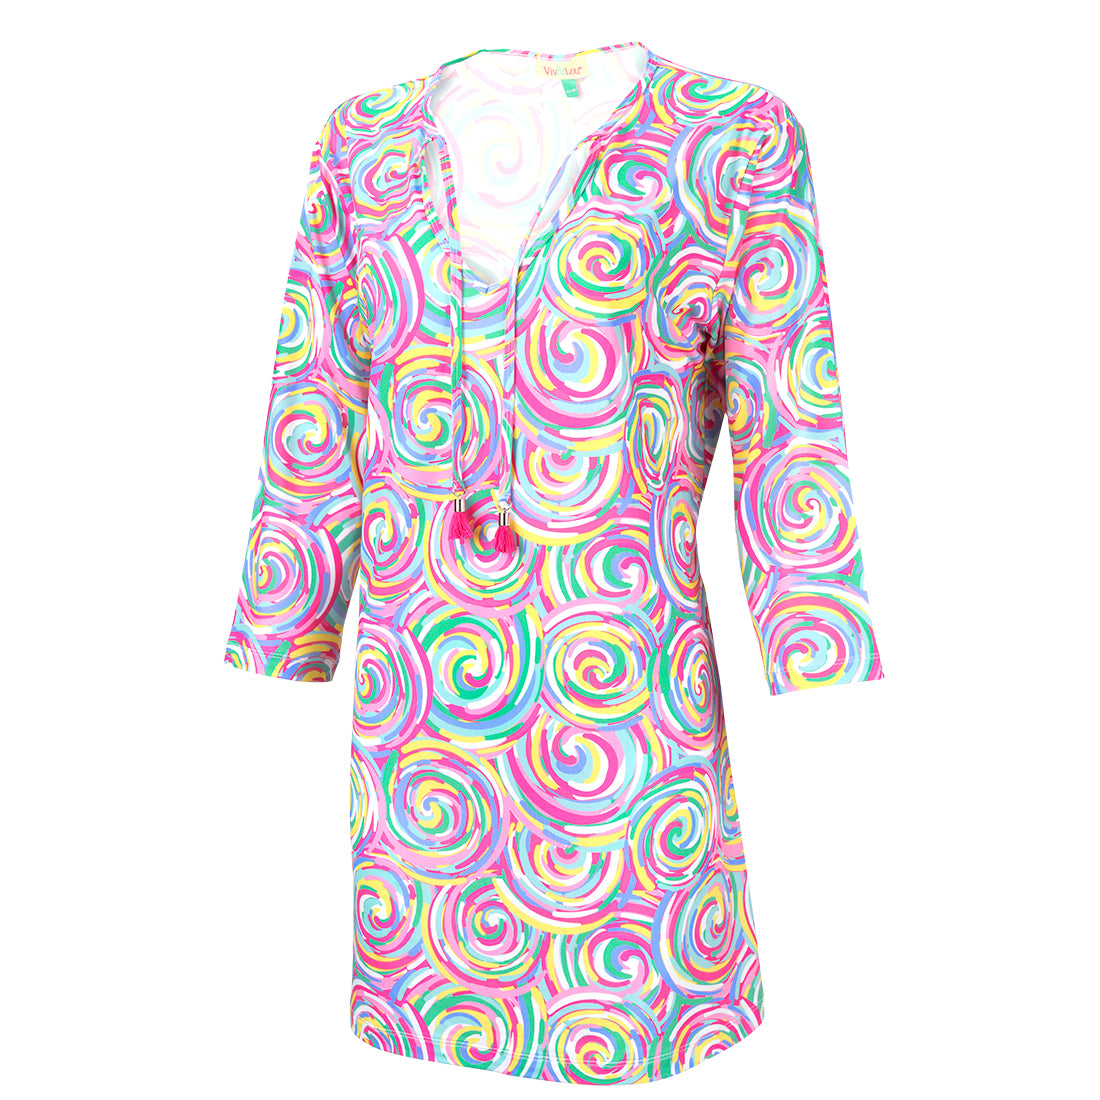 Women's Beach Cover-Up Tunic